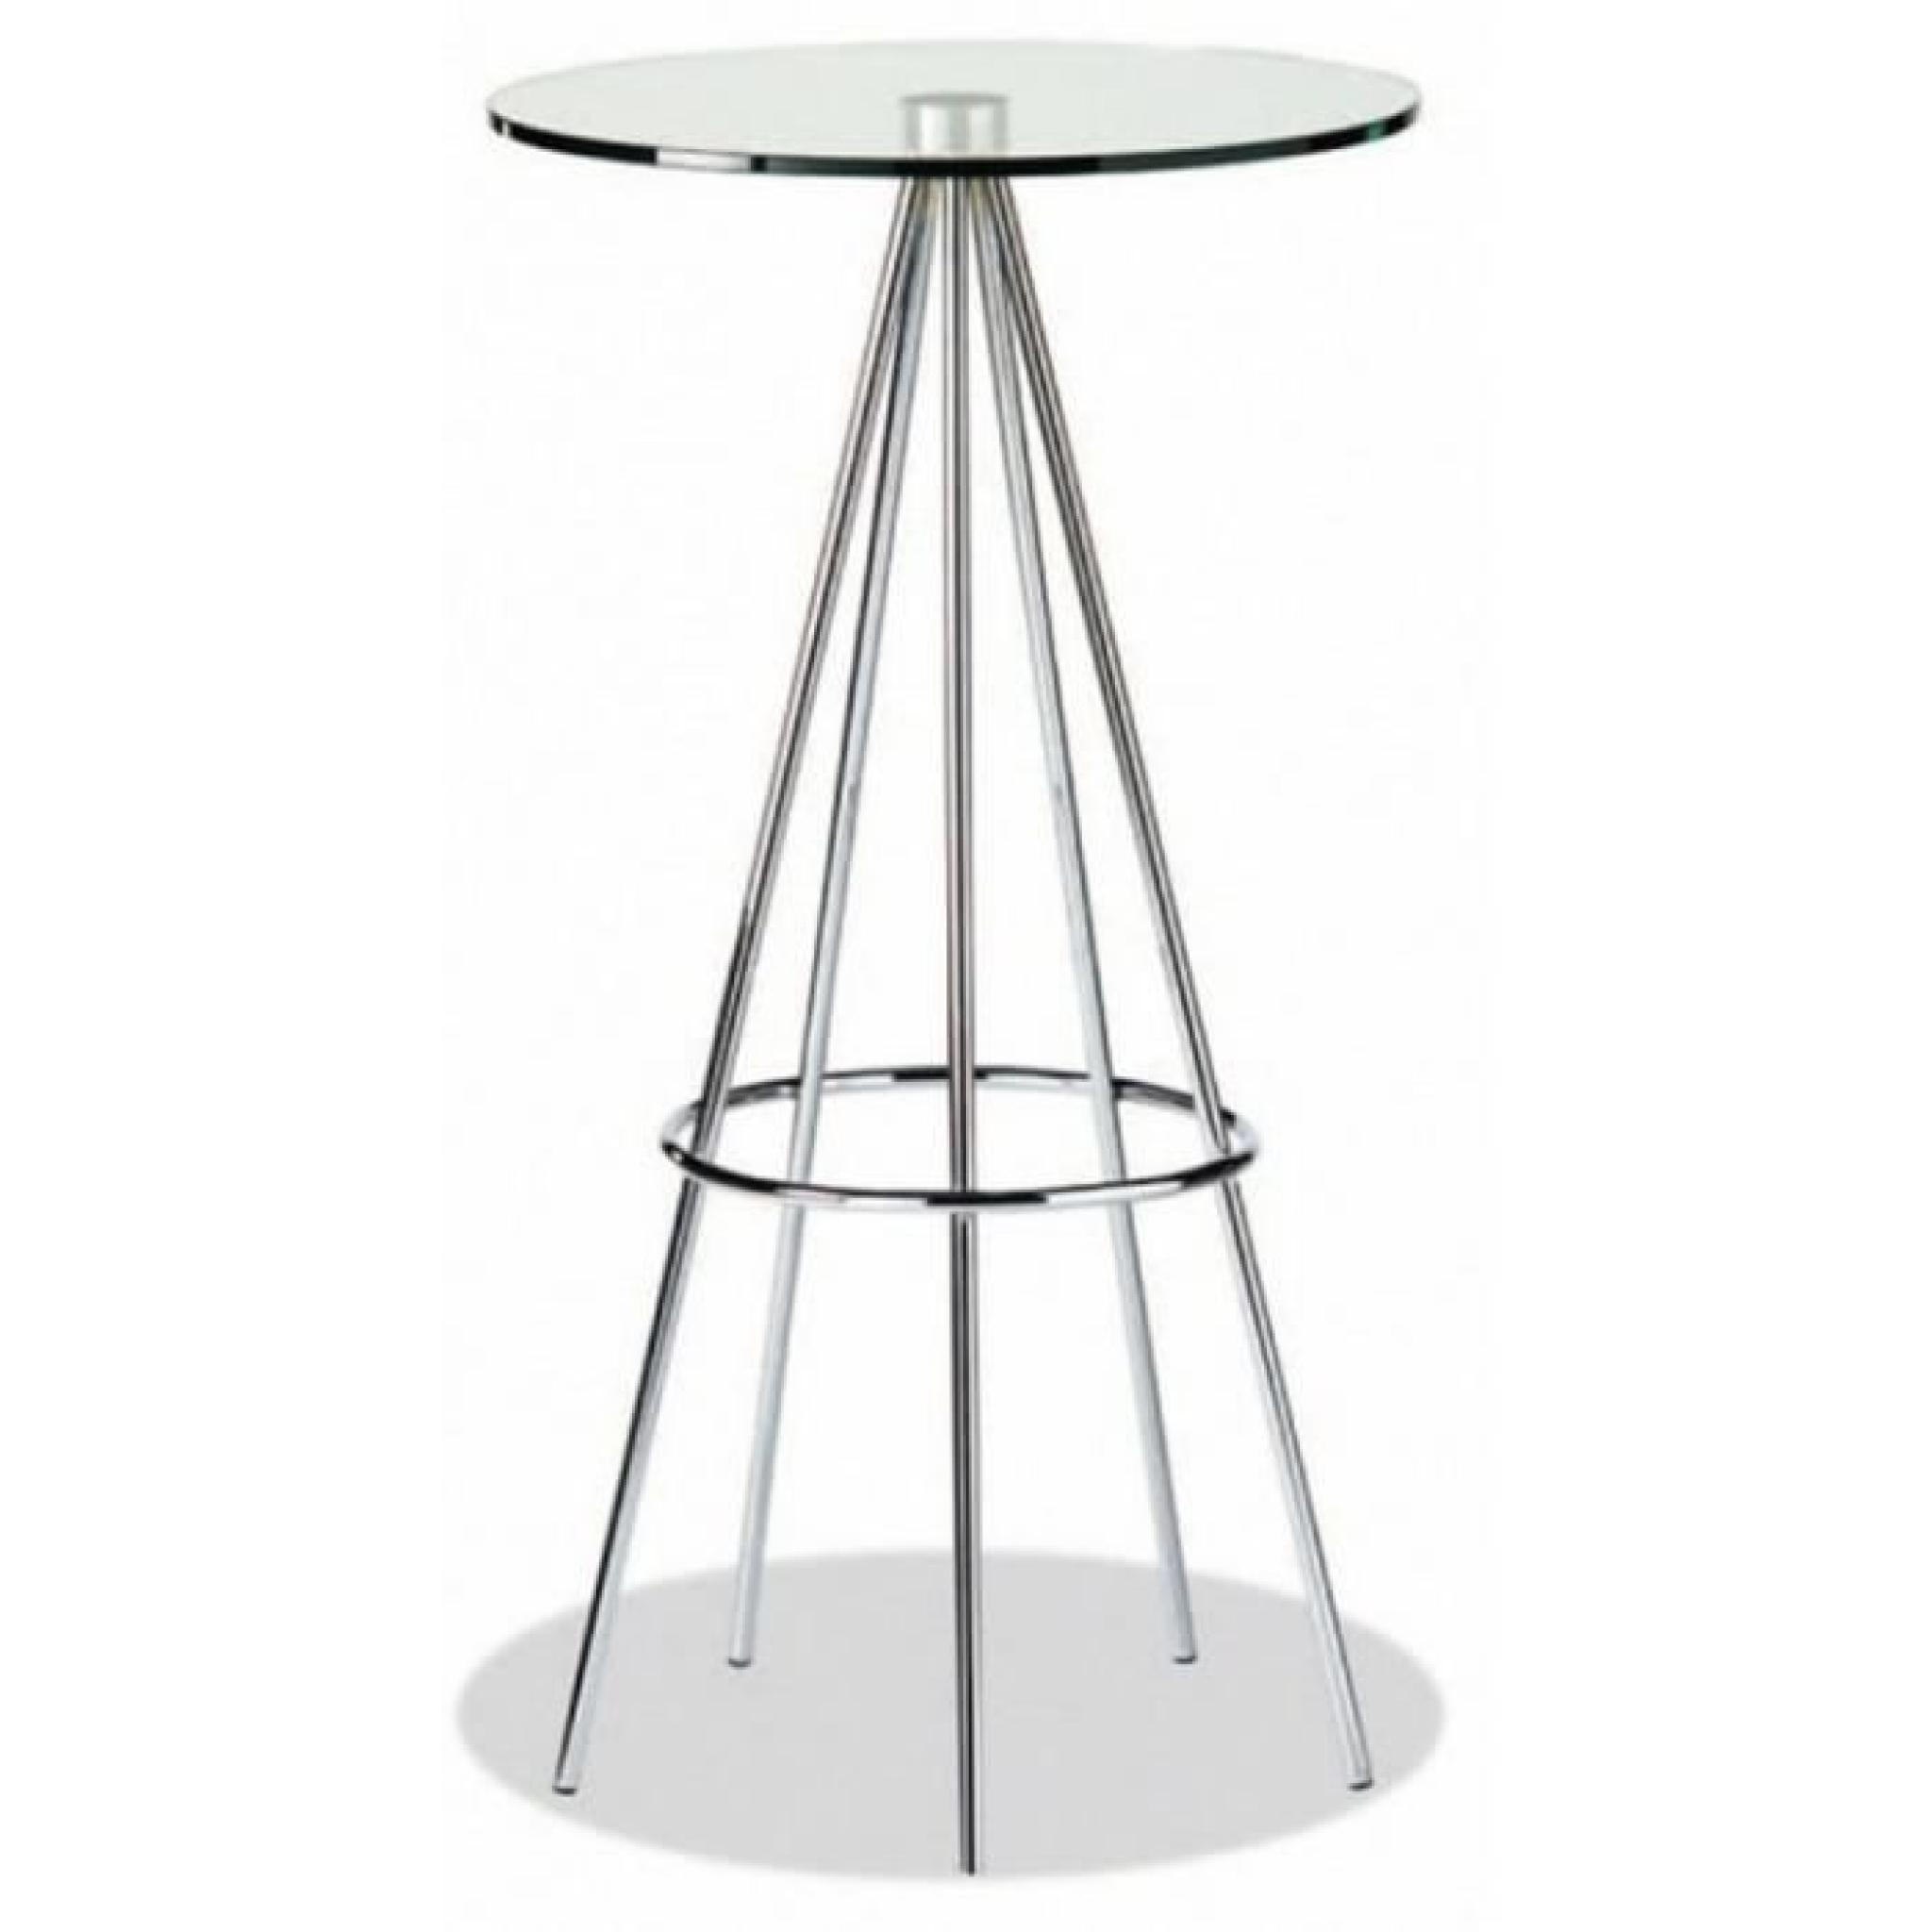 Table bar ronde design en verre et métal chromé - Achat/Vente table ...